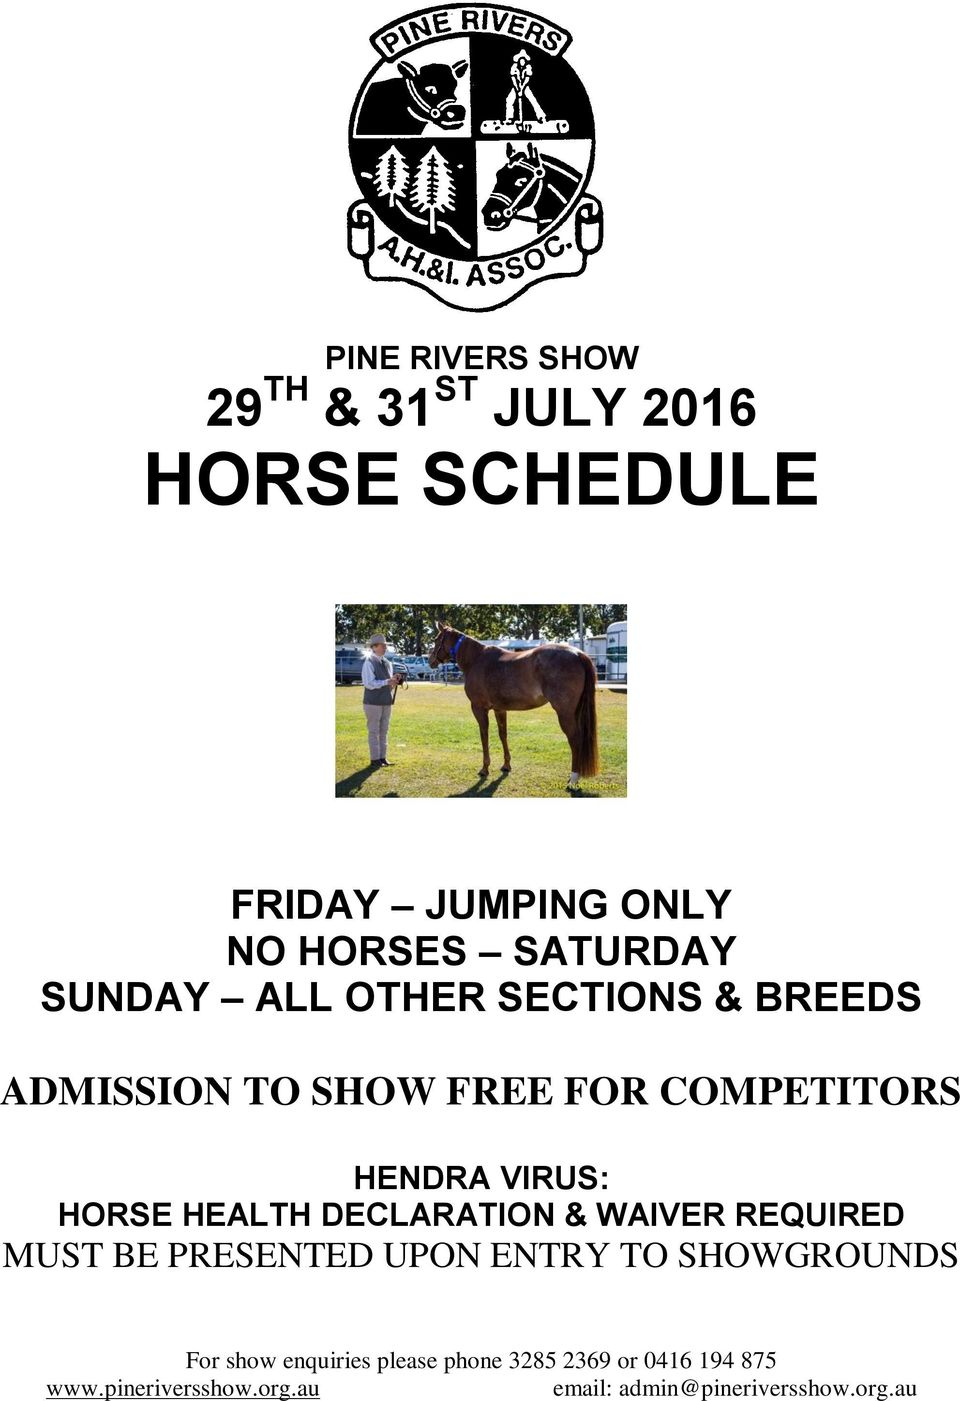 ADMISSION TO SHOW FREE FOR COMPETITORS HENDRA VIRUS: HORSE HEALTH